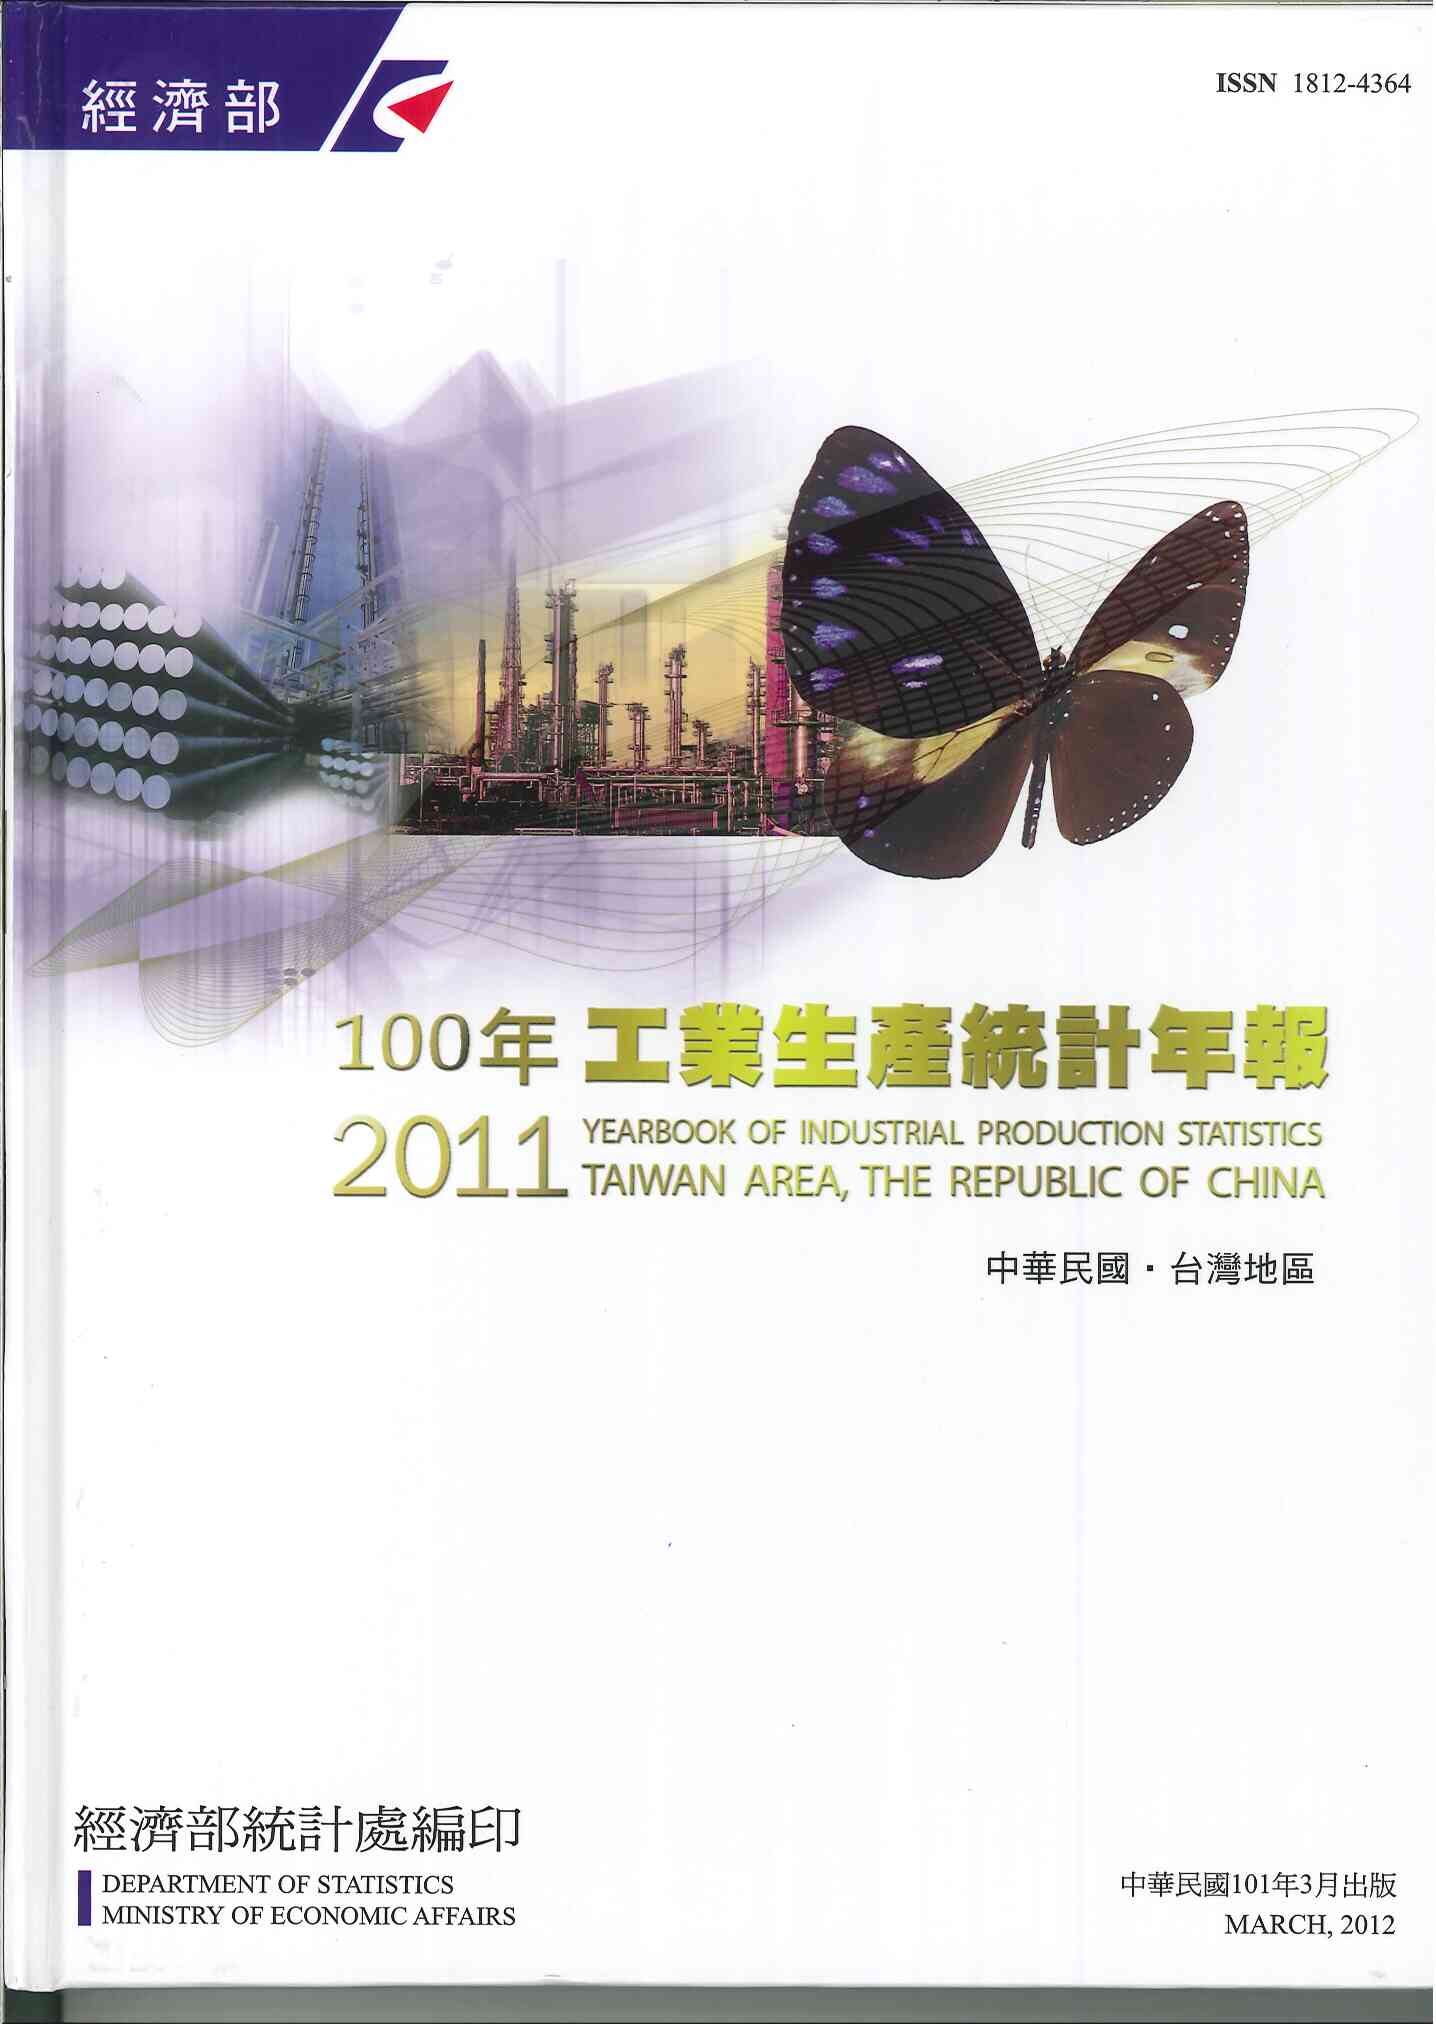 中華民國臺灣地區工業生產統計年報=Yearbook of industrial production statistics Taiwan area, The Republic of China